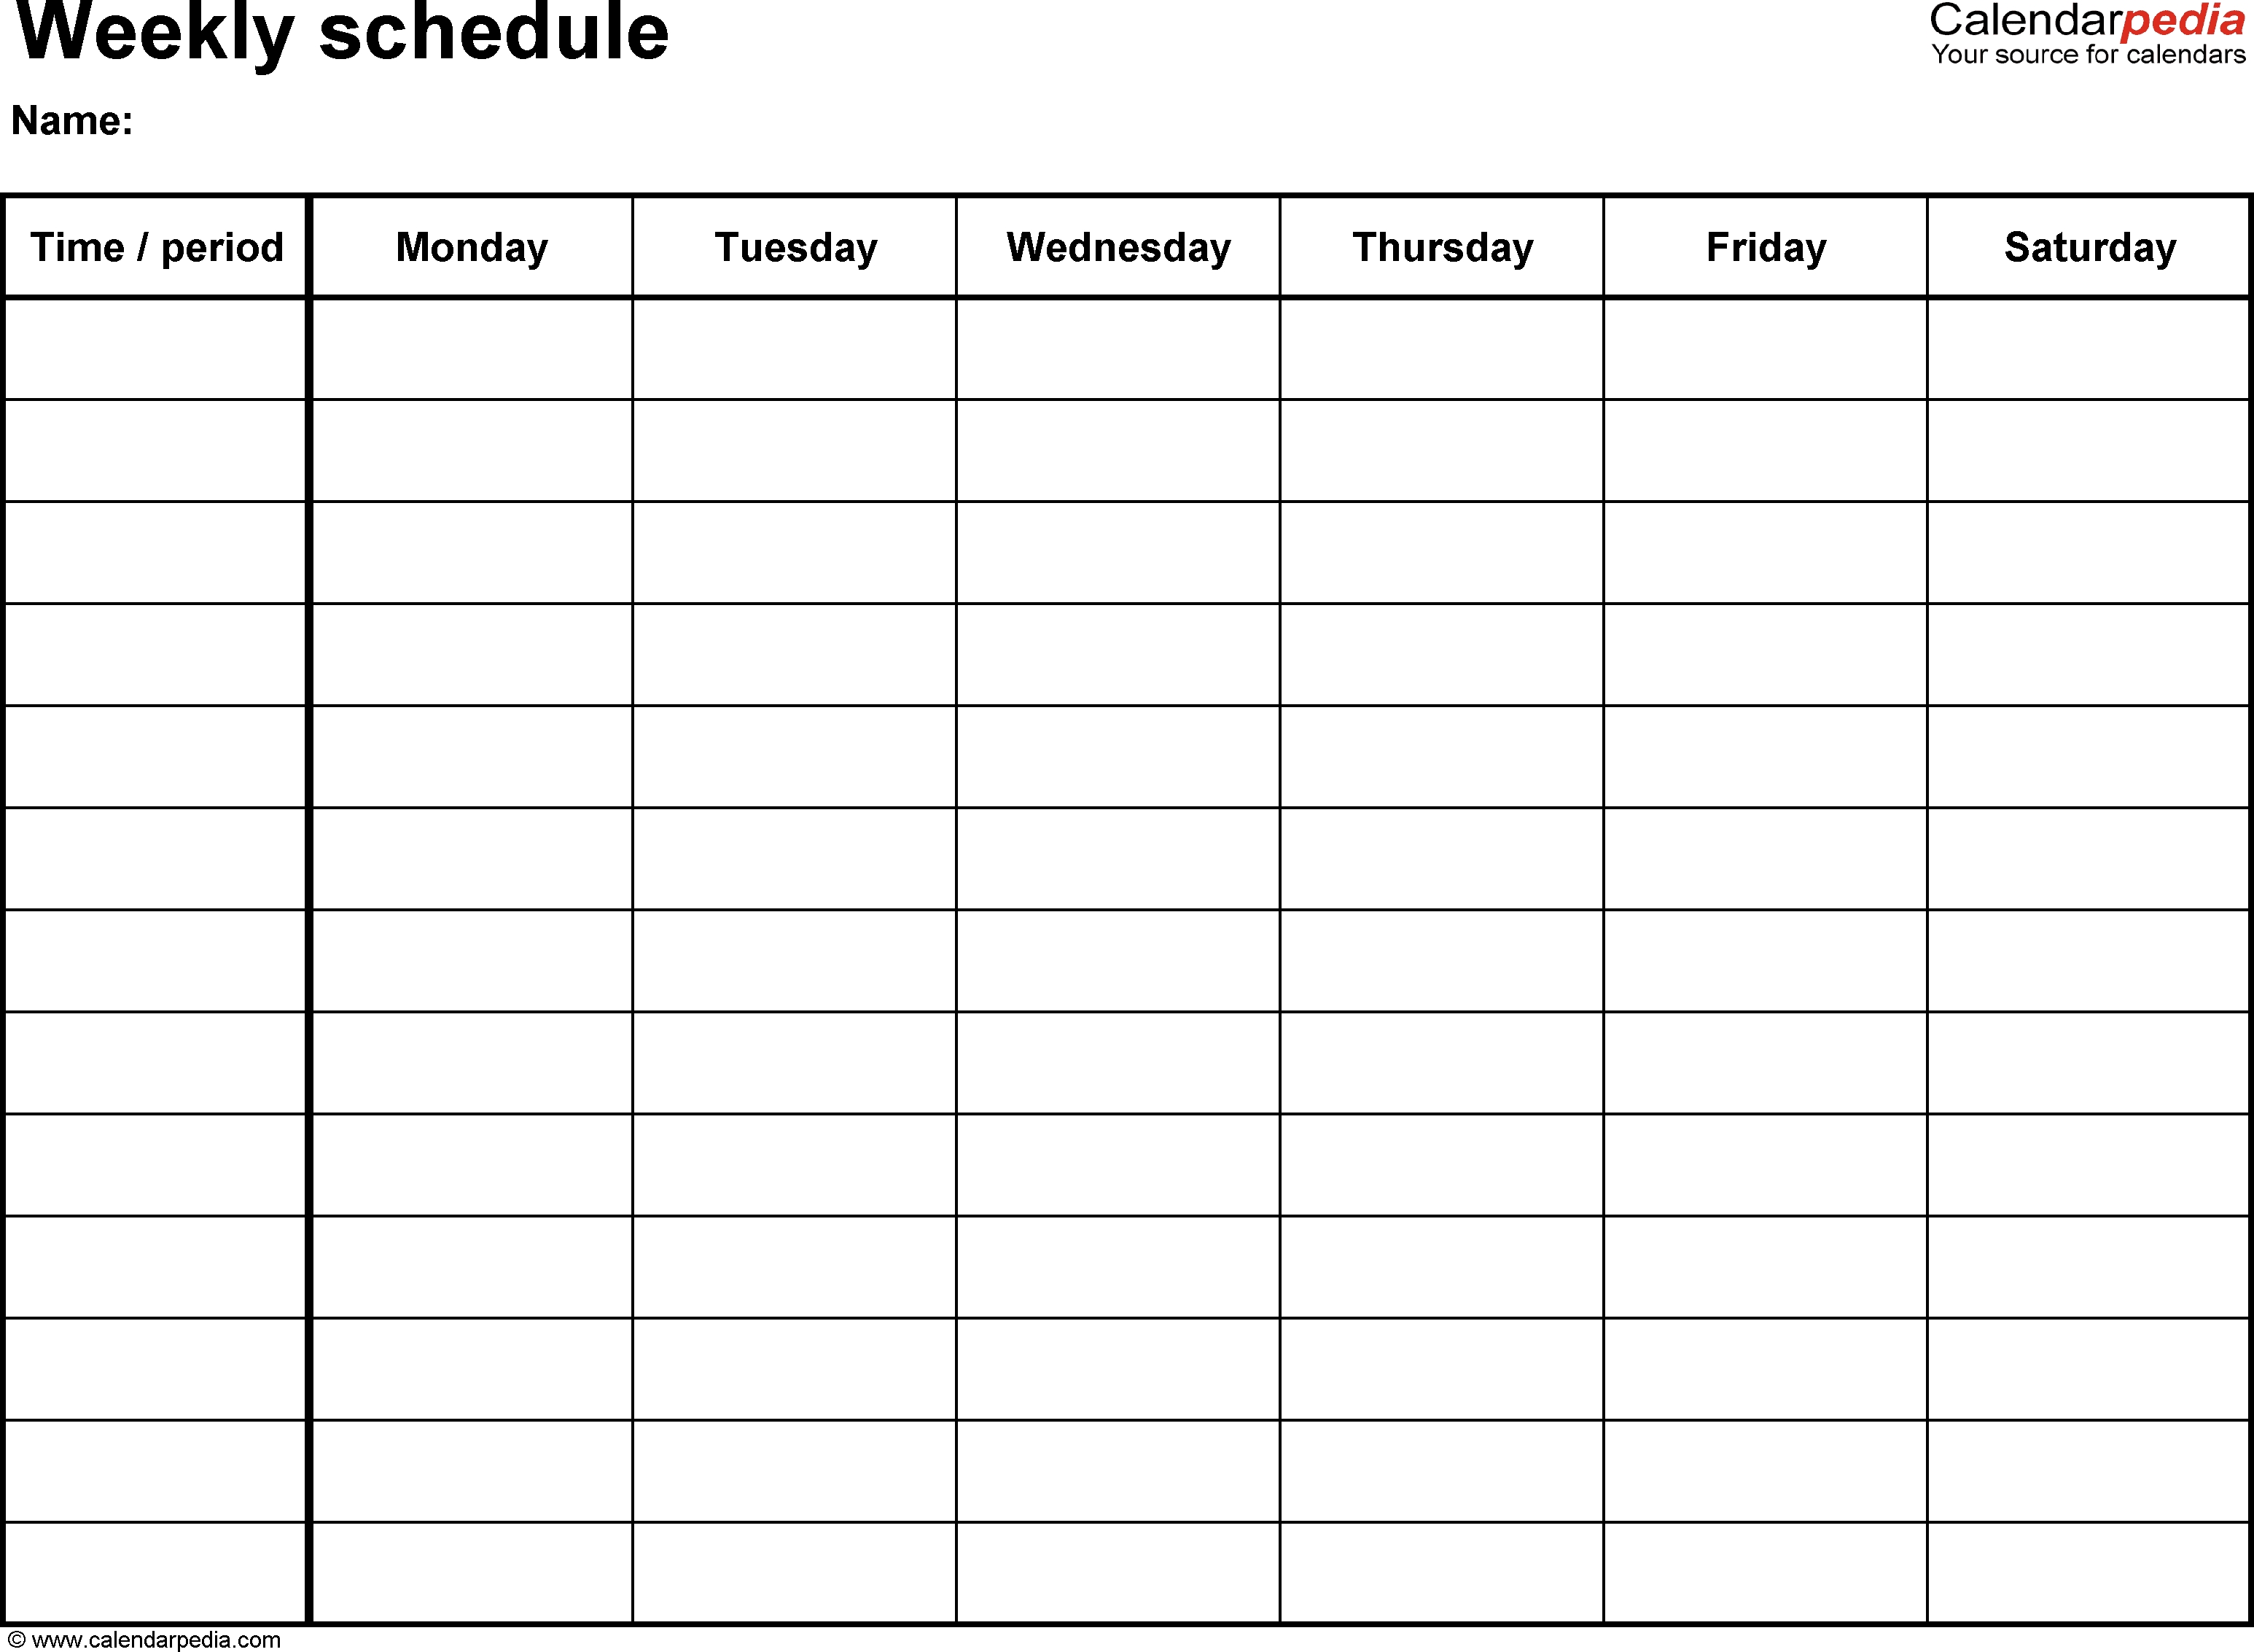 Free Weekly Schedule Templates For Word - 18 Templates intended for Free Printable Weekly Blank Calendar